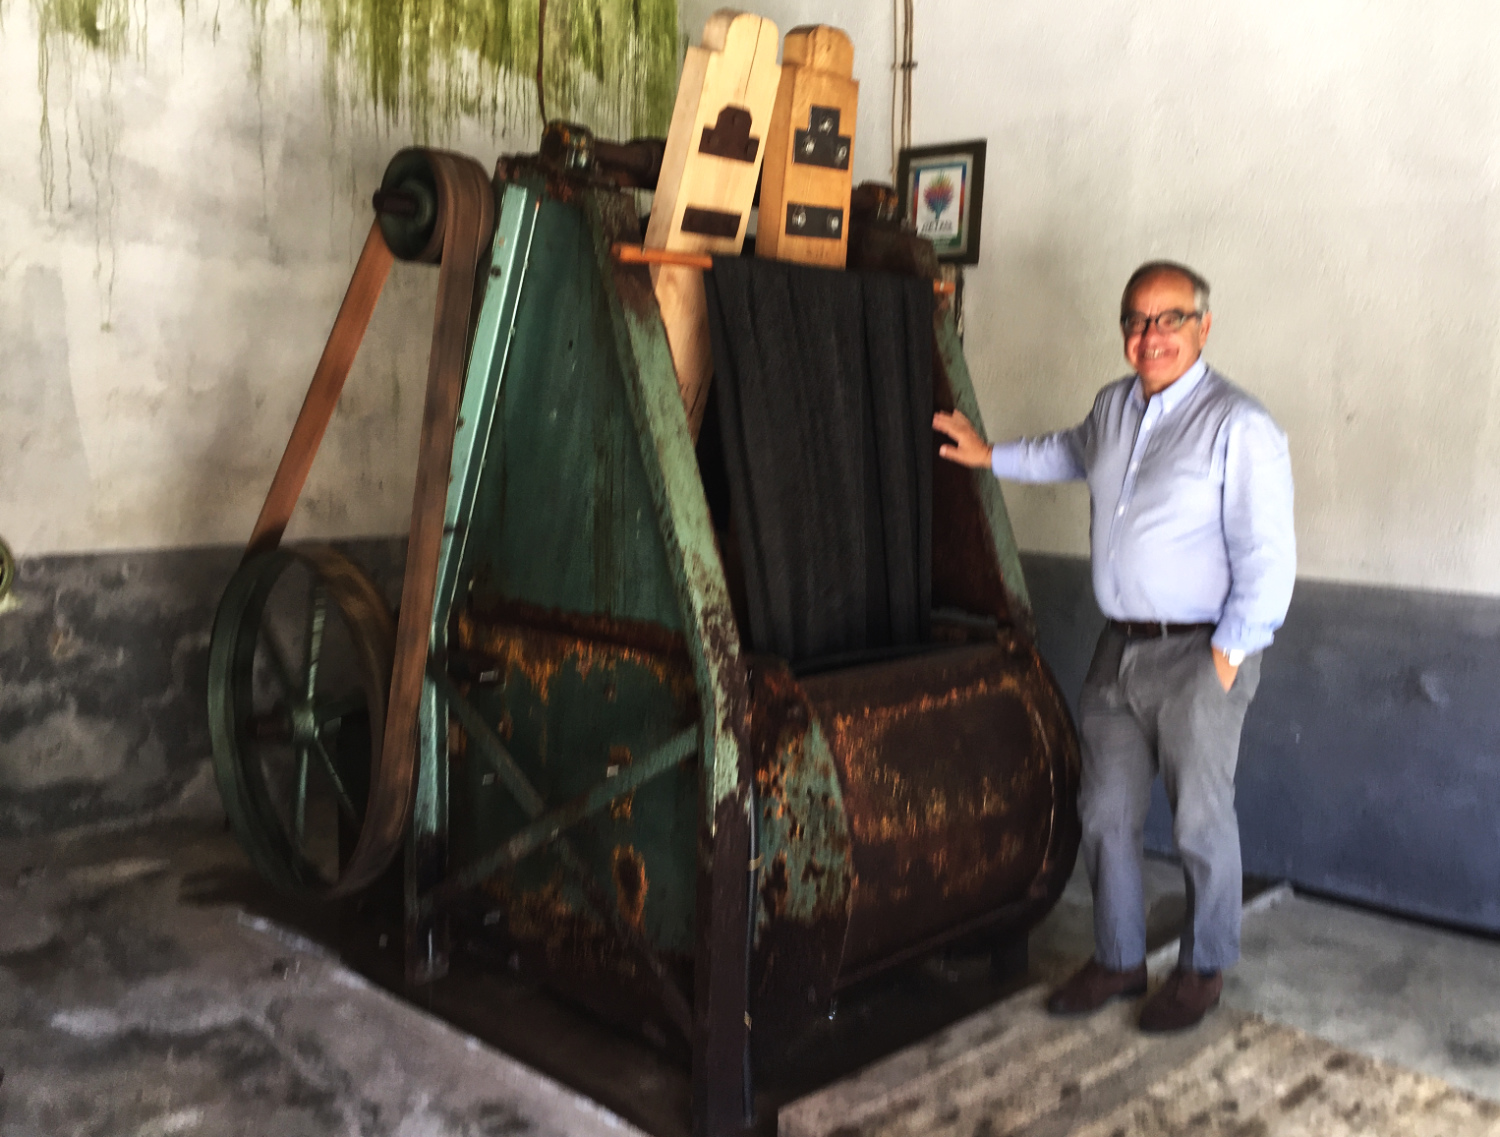 The owner of Ecolã shows off his ancient felting machine